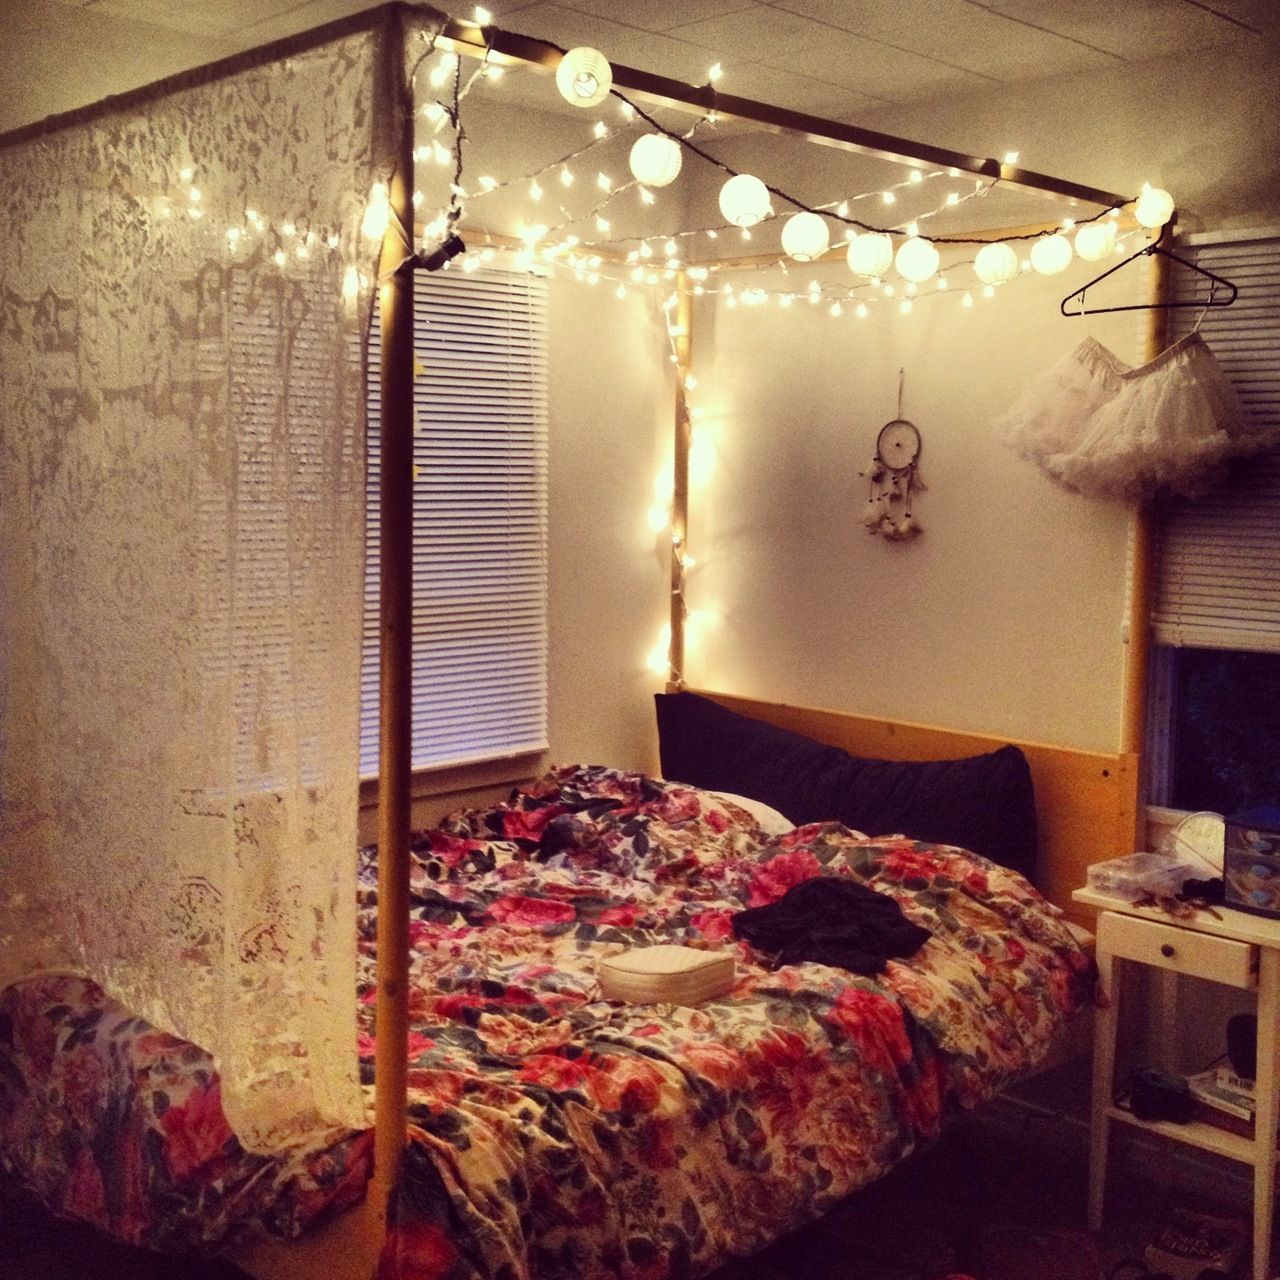 Want A Cheap Canopy Bed Find A Simple Brown Or Black Frame And Some Pvc Pipe Makeup Ideas